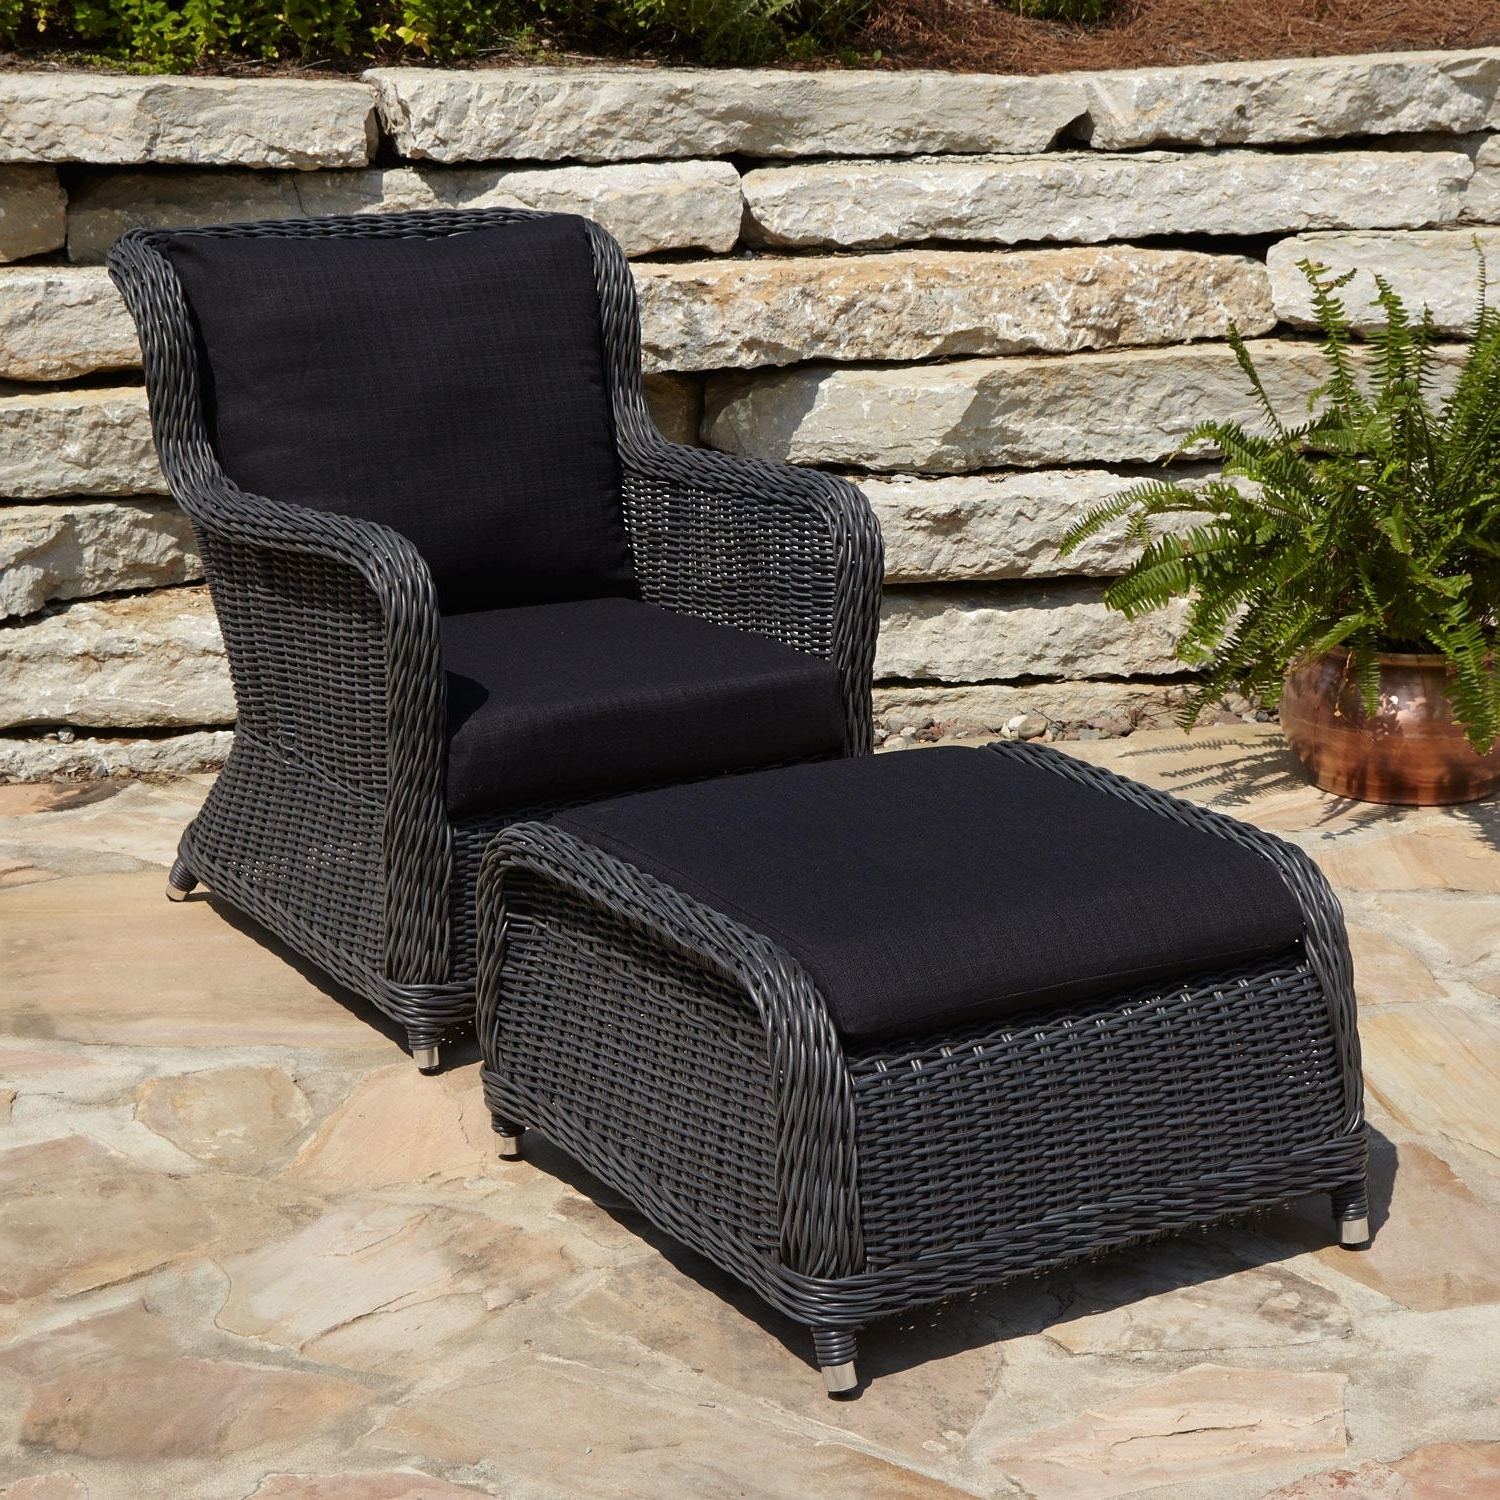 Most Recently Released Chaise Lounge Chairs At Big Lots With Outdoor : Outdoor Lounger Sofa Lowes Lounge Chairs Big Lots Lounge (View 11 of 15)